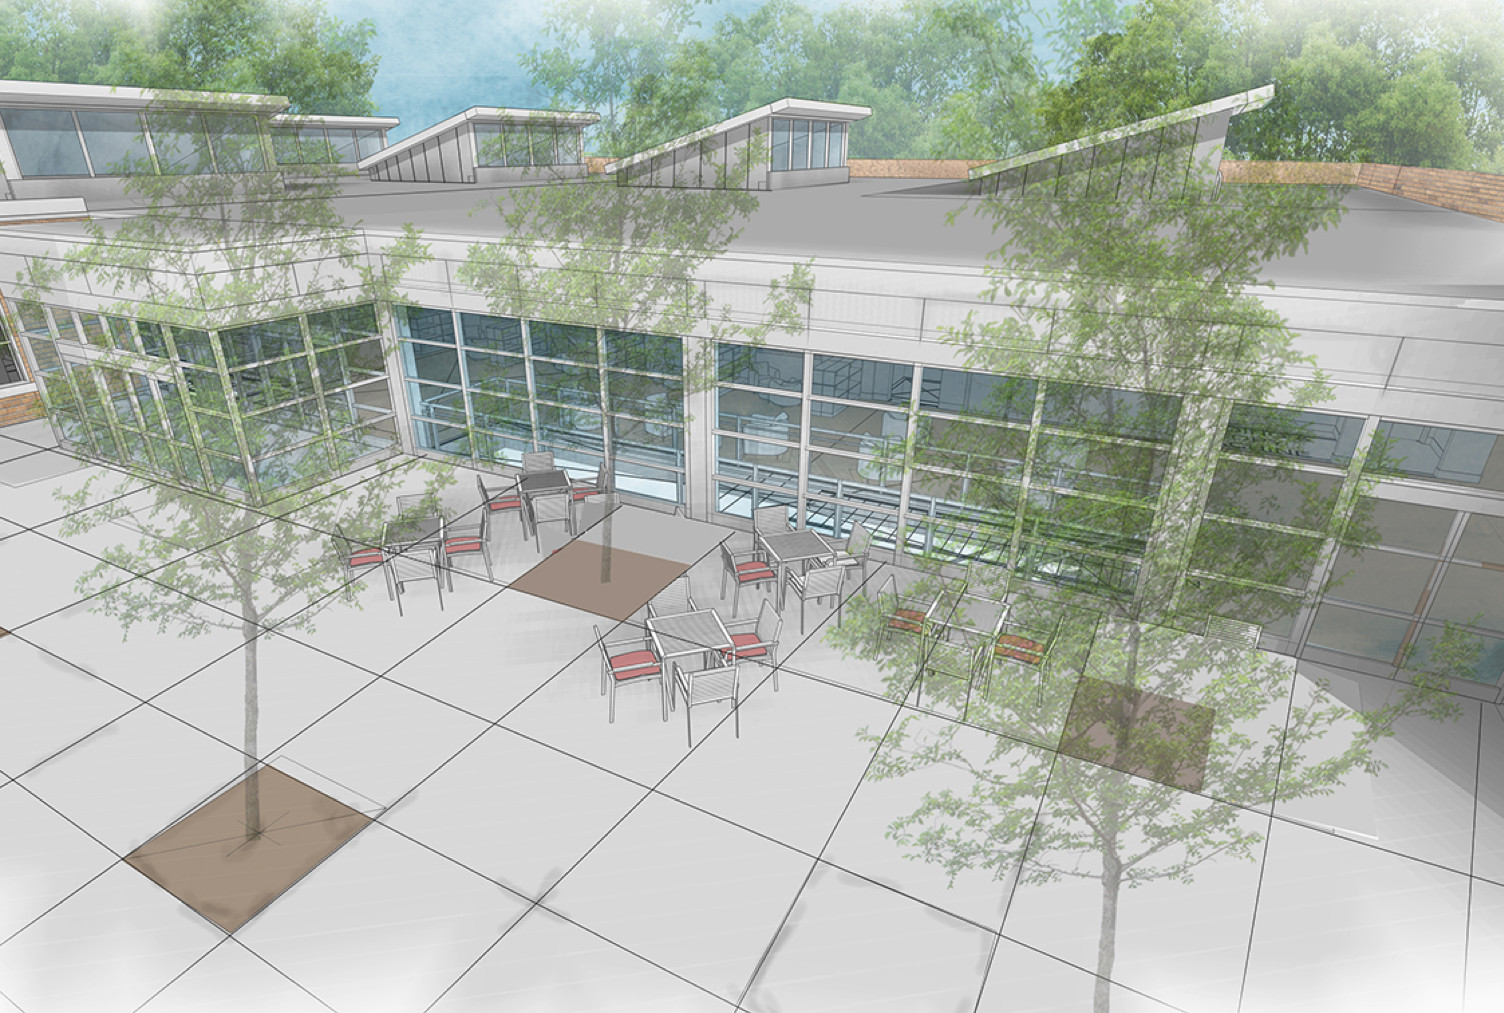 An artist's rendering shows the proposed new library entryway, including strategically placed trees that will provide shade during the summer and allow natural light to filter through the windows in the winter, explained Library Director Rocco Cassano.